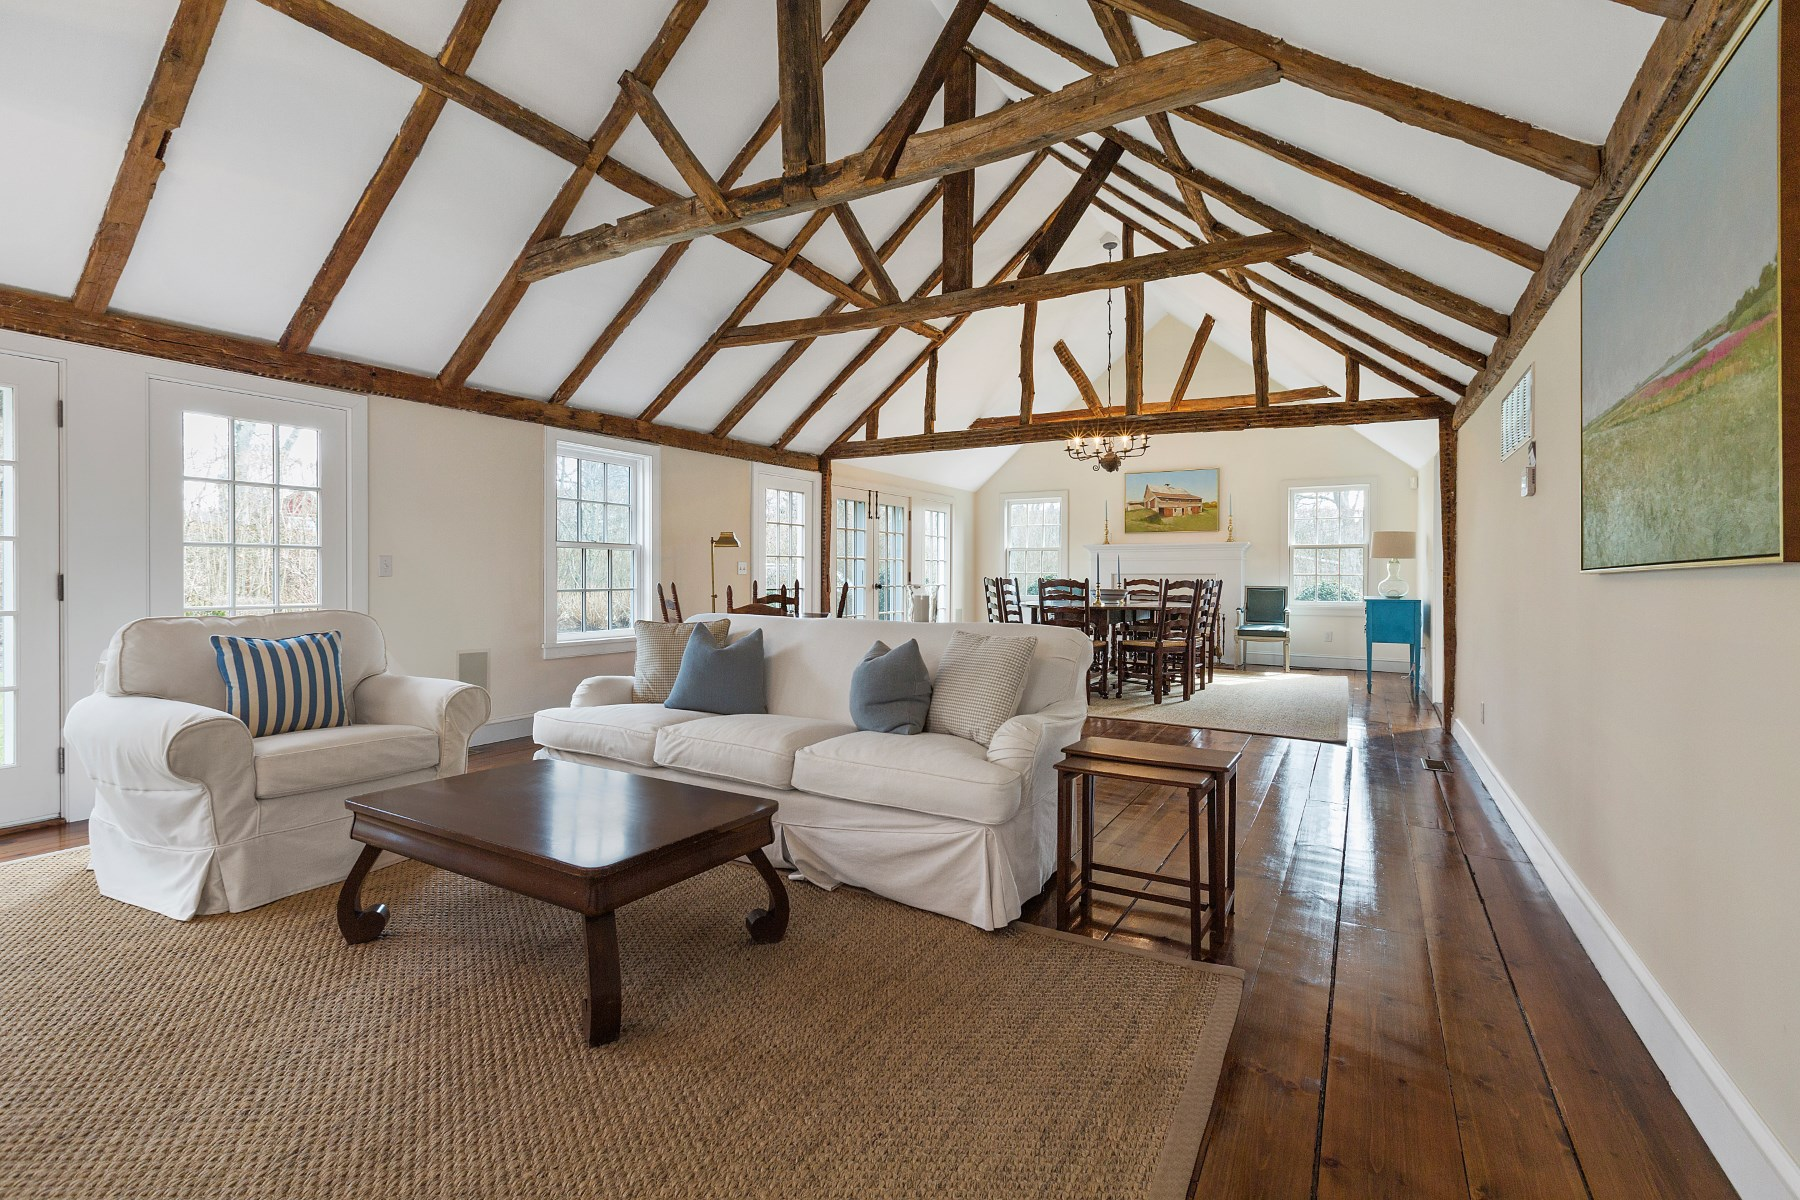 Property Of NEW AND OLD IN GREAT WAINSCOTT SOUTH